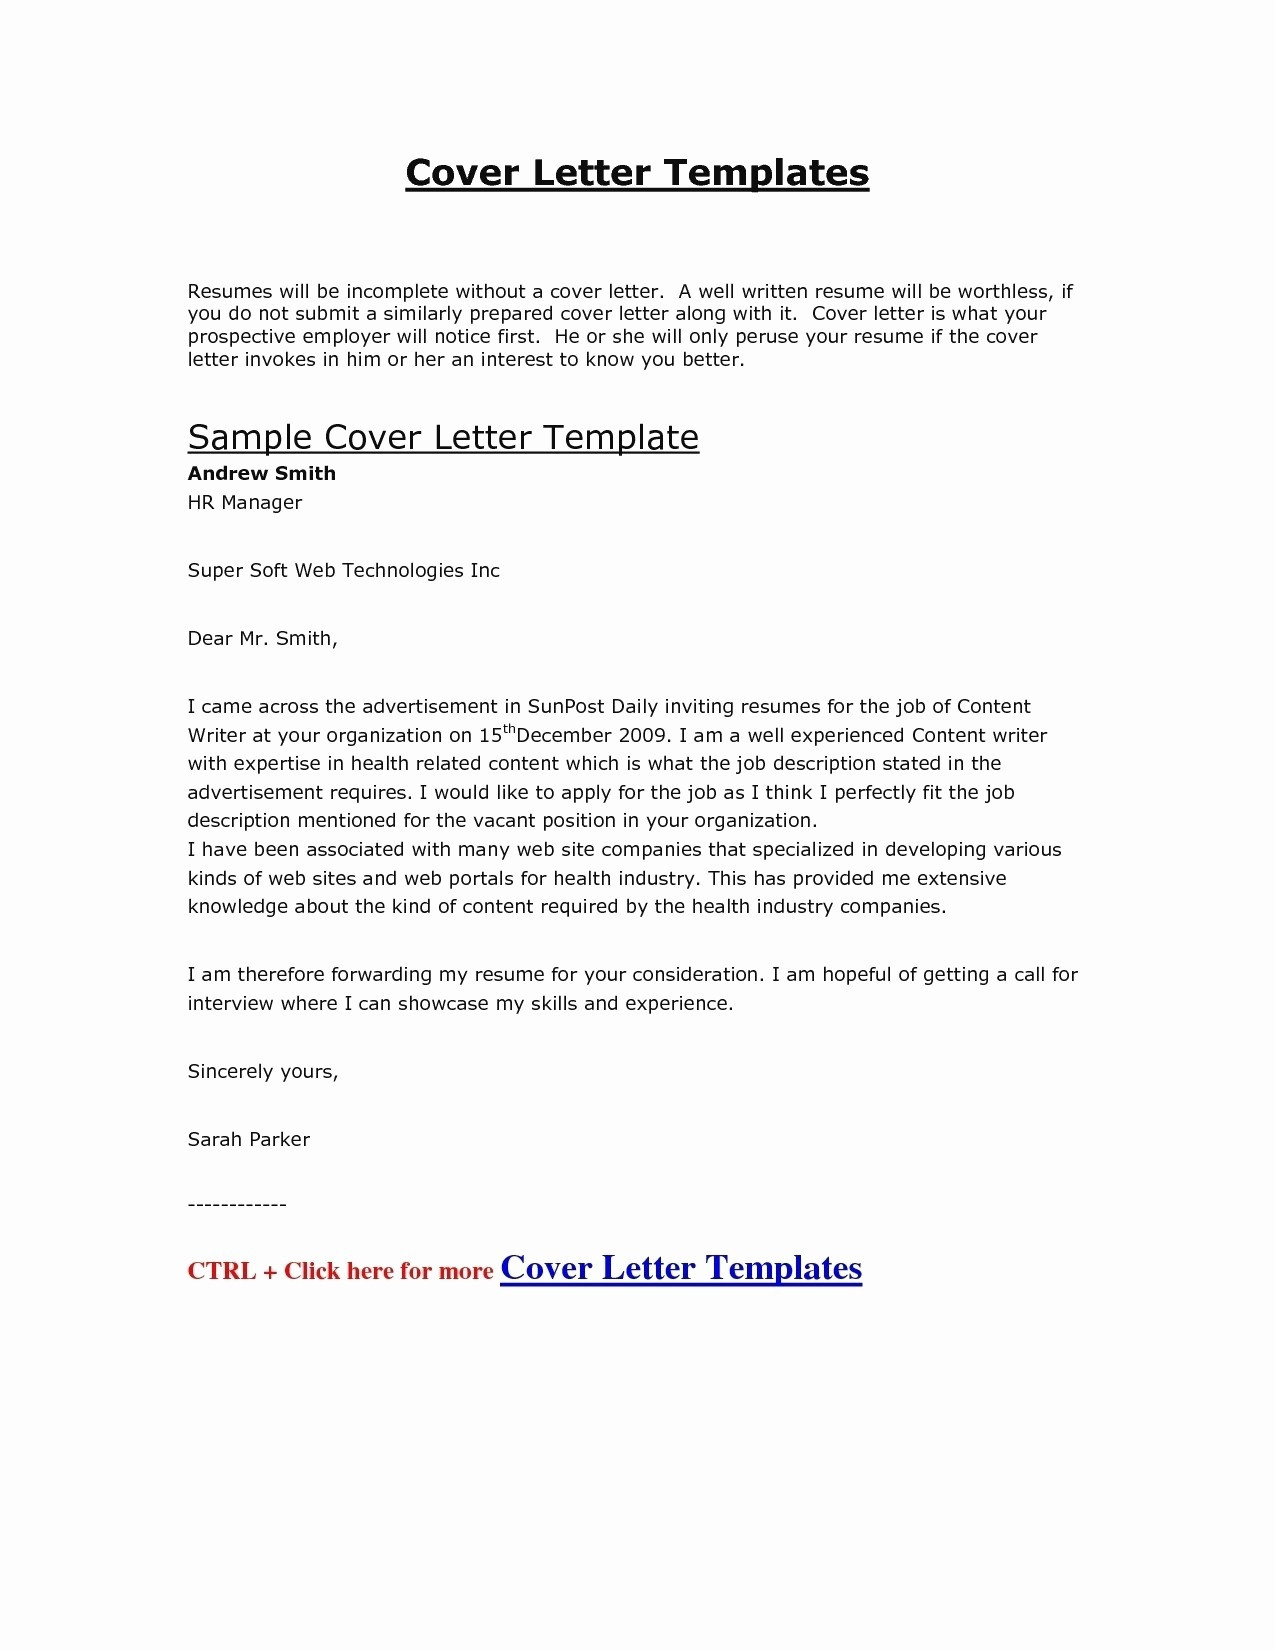 Example Cover Letter for Resume - Job Apply Cover Letter Bank Letter format formal Letter Template